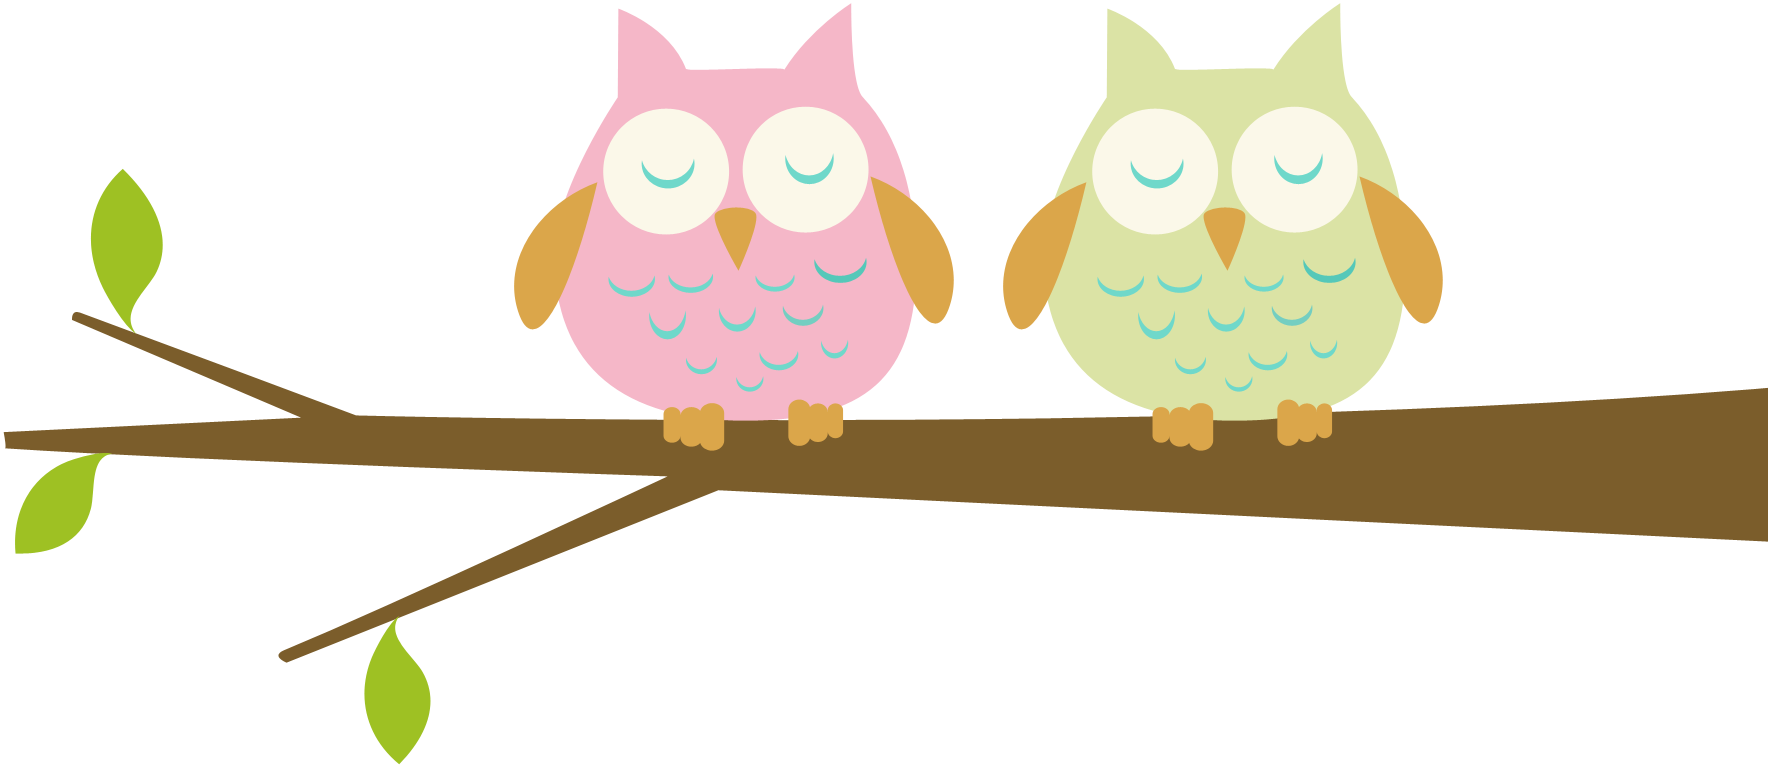 Owls clipart pink.  collection of transparent